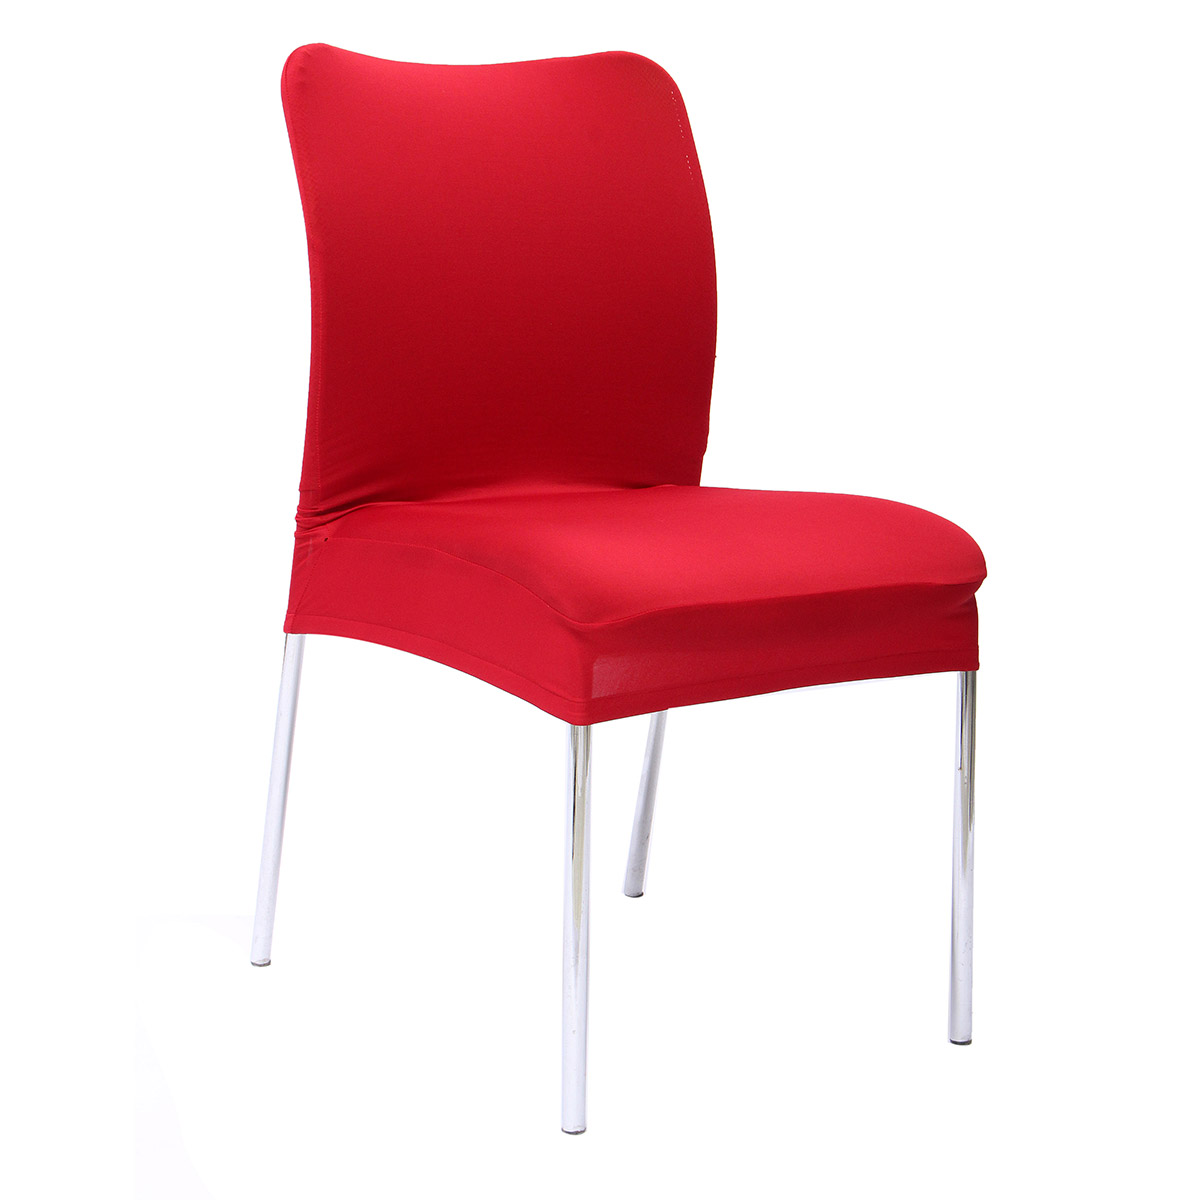 stool chair red outdoor patio cushions target stretch soft seat cover removable dining room